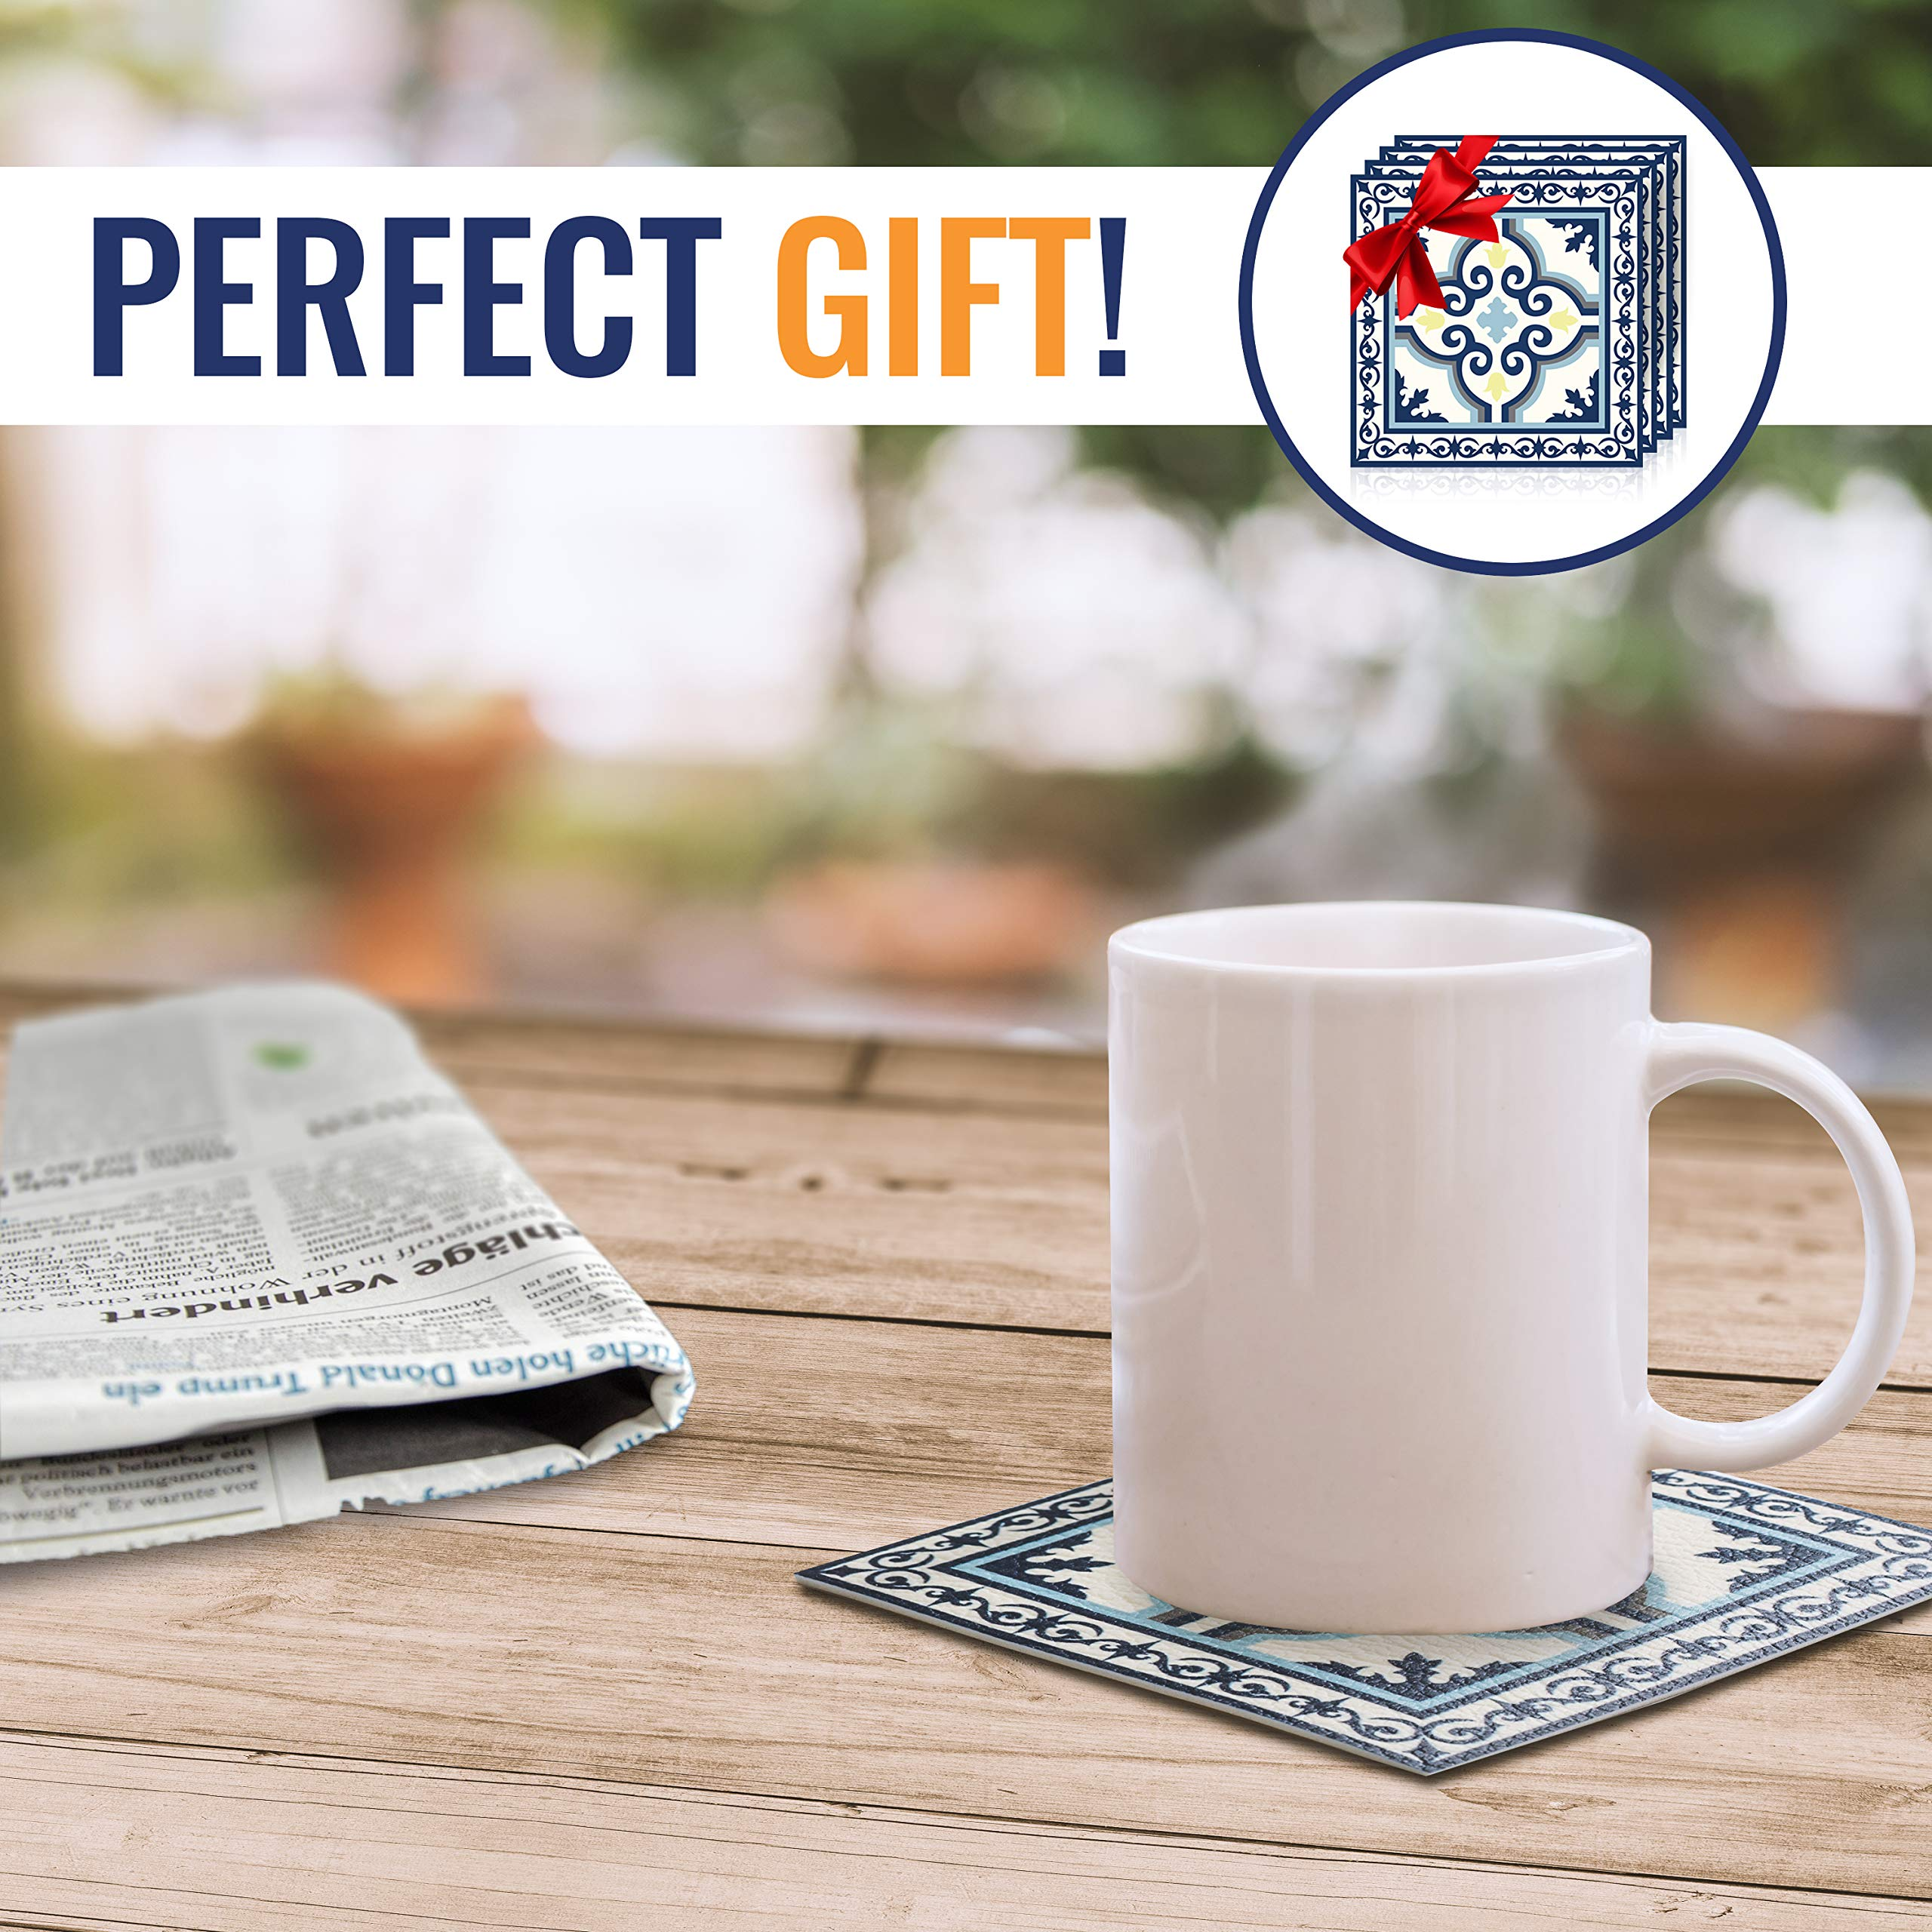 Camoone Non Slip Kitchen Mat + 4 Free Coasters - (Greek Garden) Blue & Off-White Decorative Vinyl Kitchen Floor Mat - Hypoallergenic, Insulated, Non-Fading, Easy to Clean and Non-Toxic''47.2x23.6x0.08'' by Camoone (Image #6)